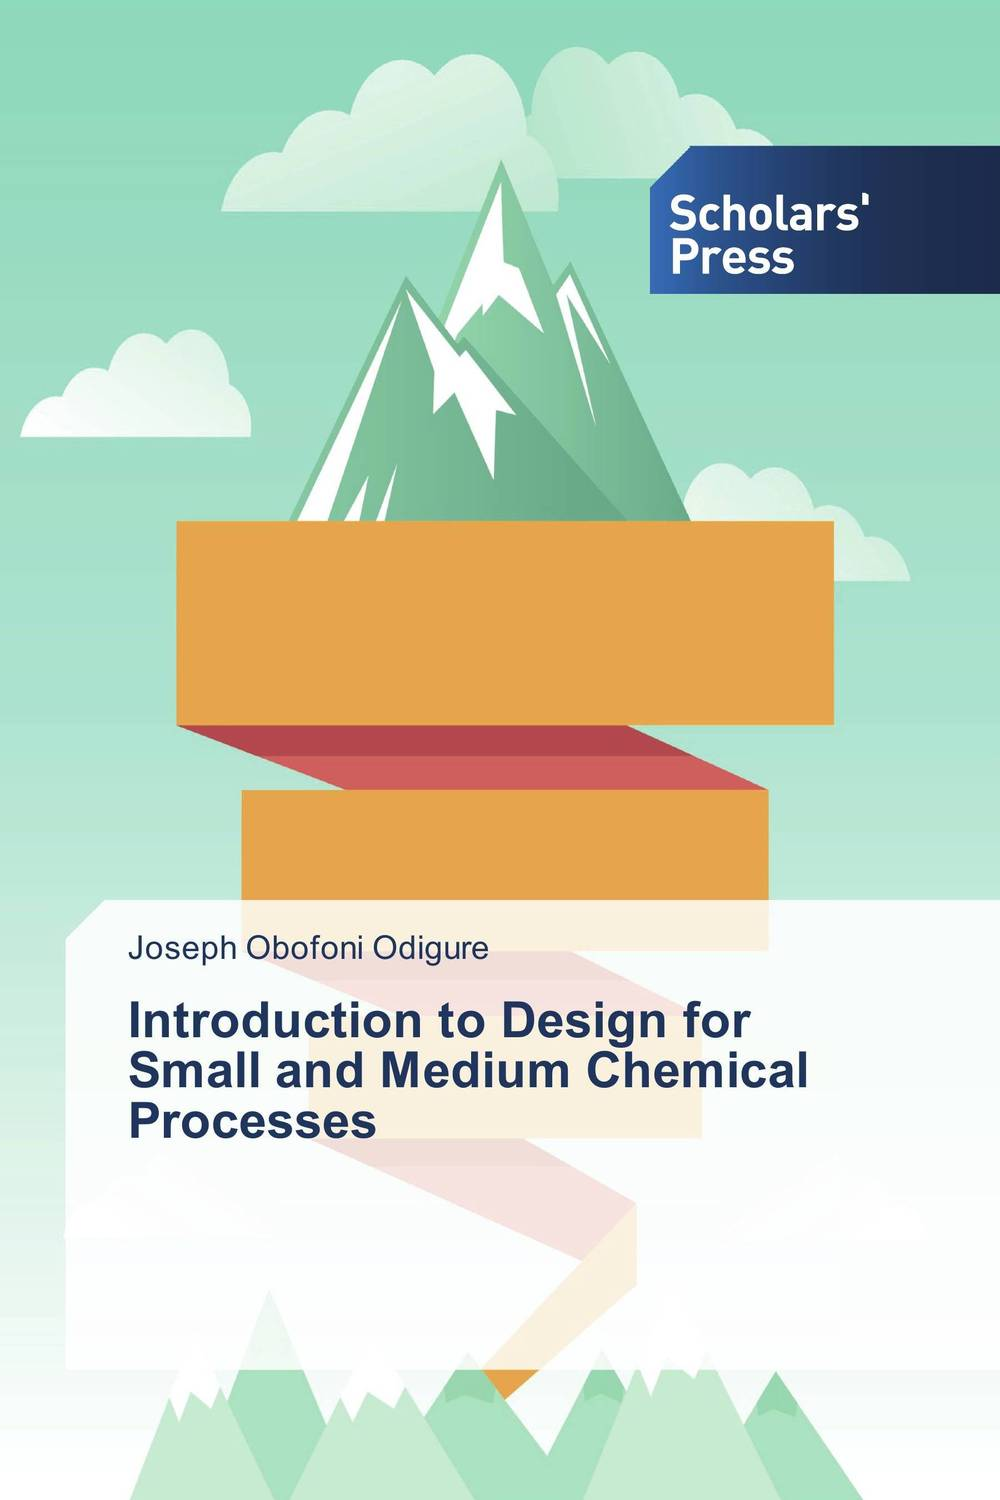 Introduction to Design for Small and Medium Chemical Processes